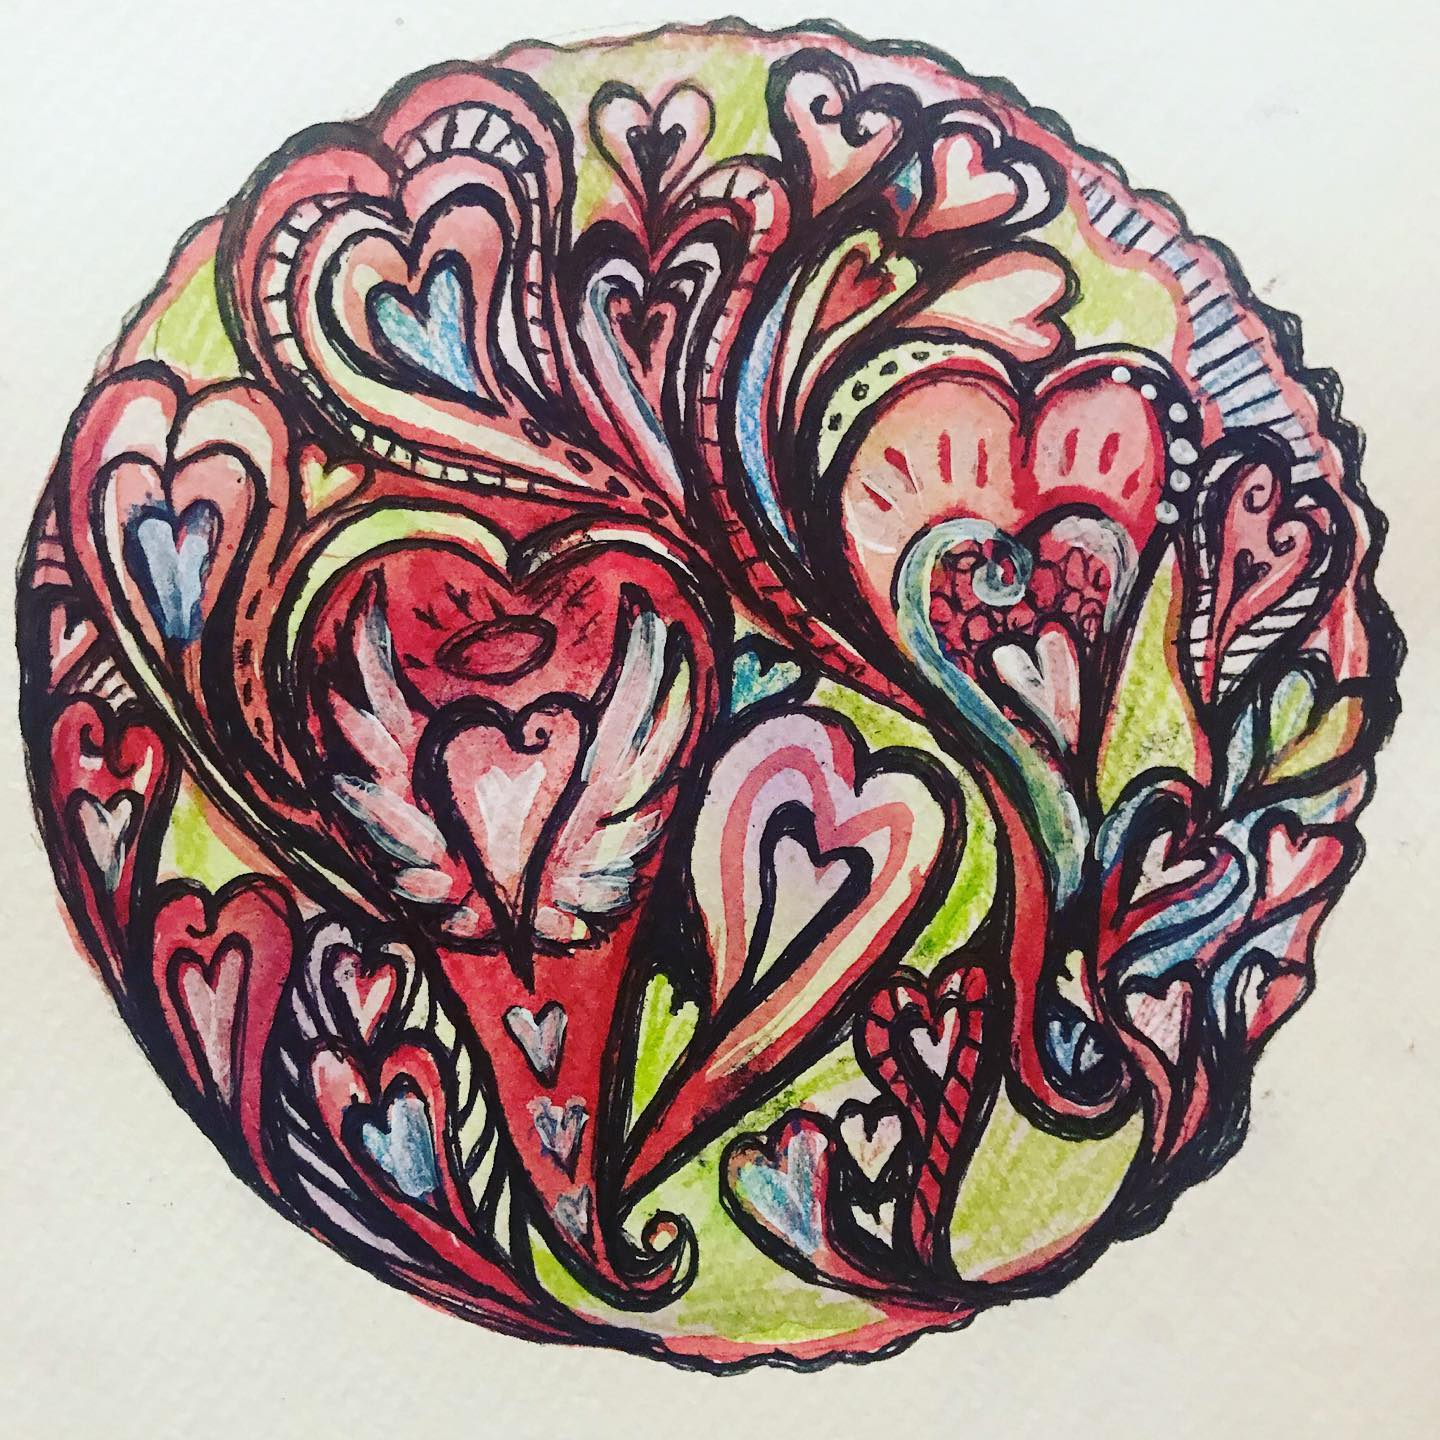 Mindful heart flow mandala painting in mixed media on A5 watercolour paper by Cheryle Bannon